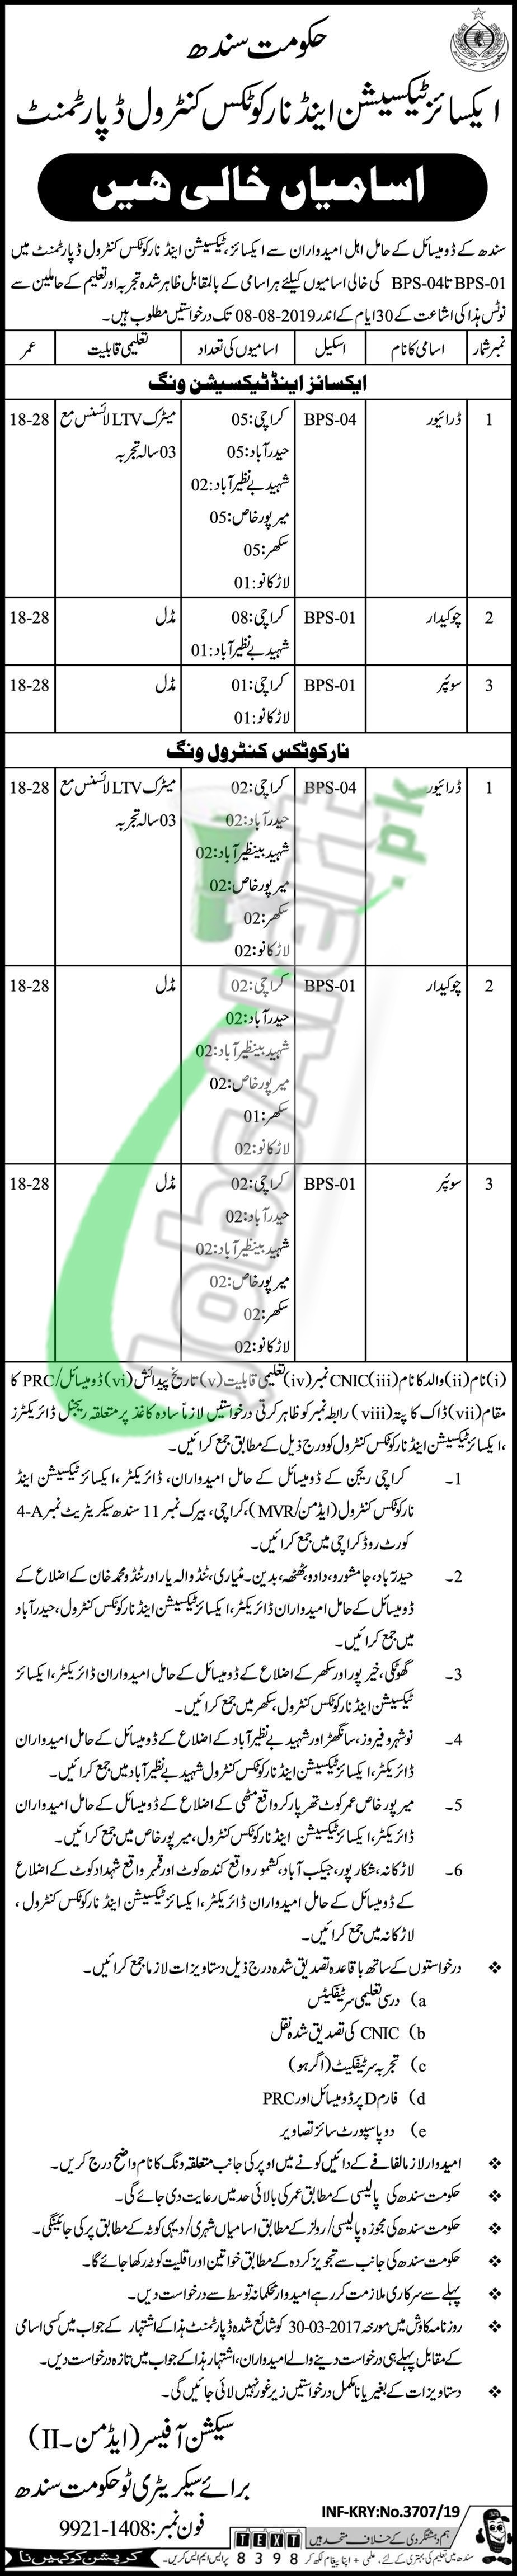 Excise and Taxation Sindh Jobs 2019